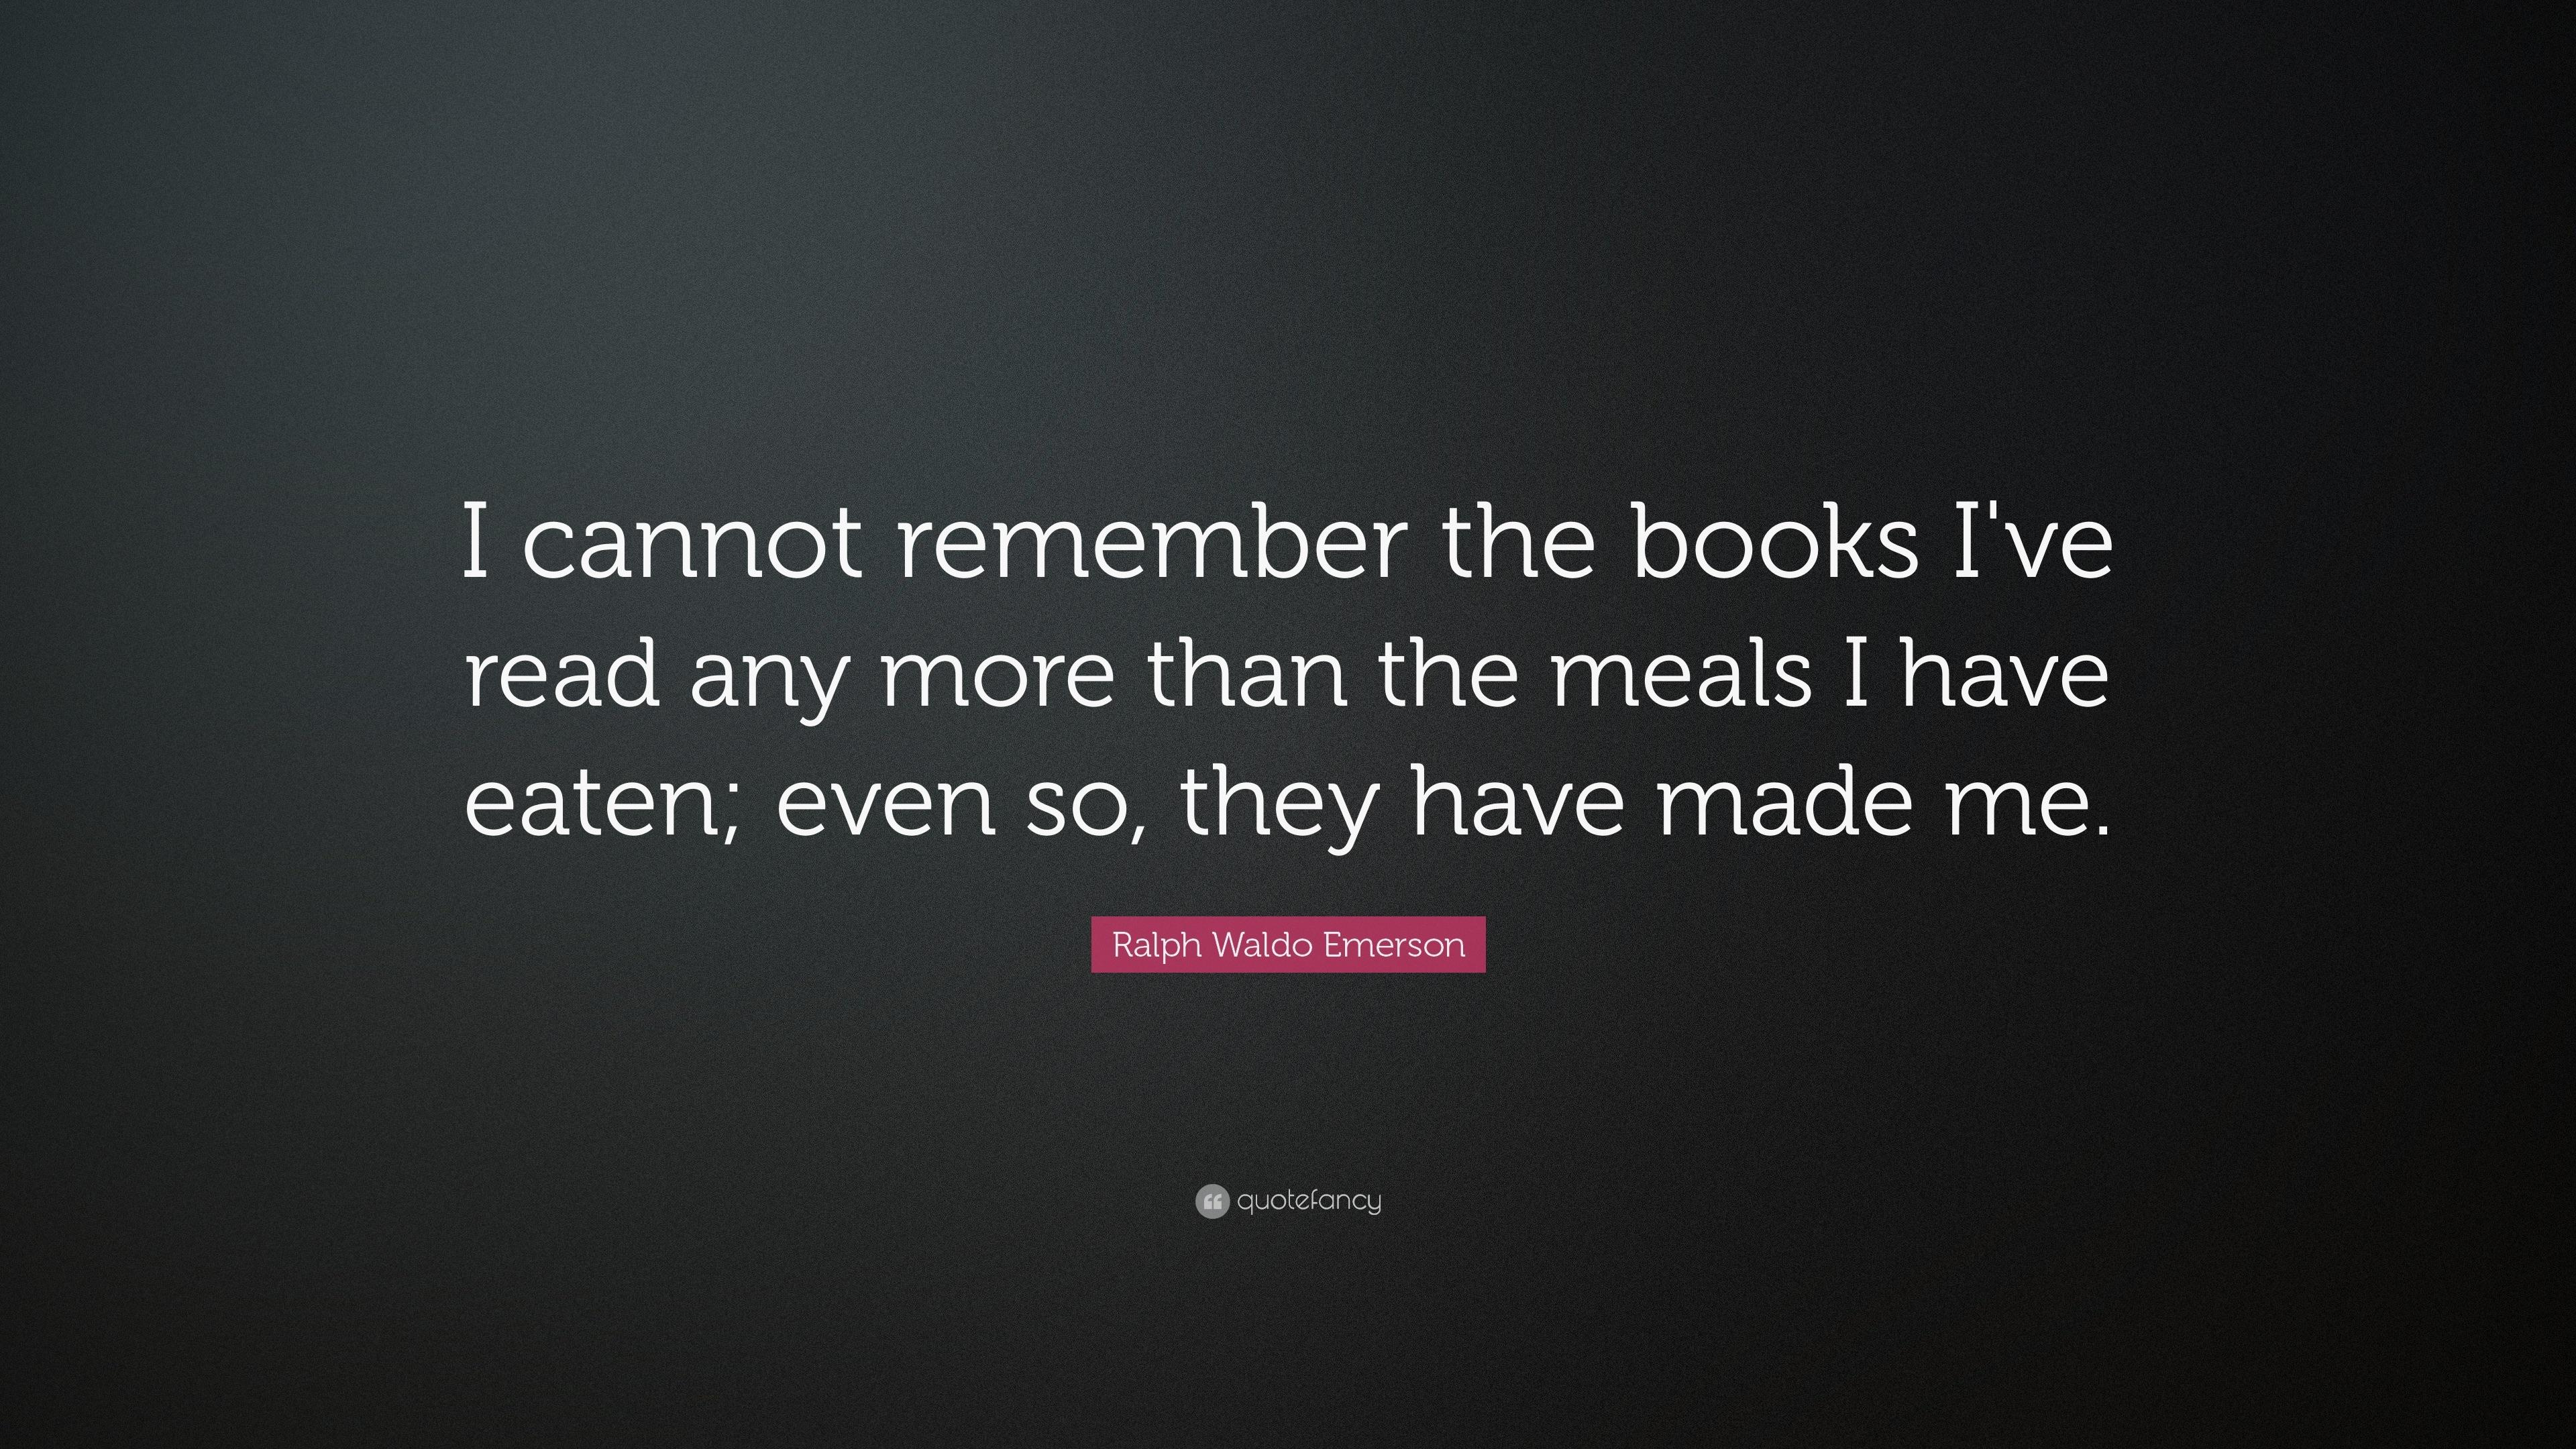 I cannot remember the books I've read any more than the meals I have eaten; even so, they have made me. https://inspirational.ly